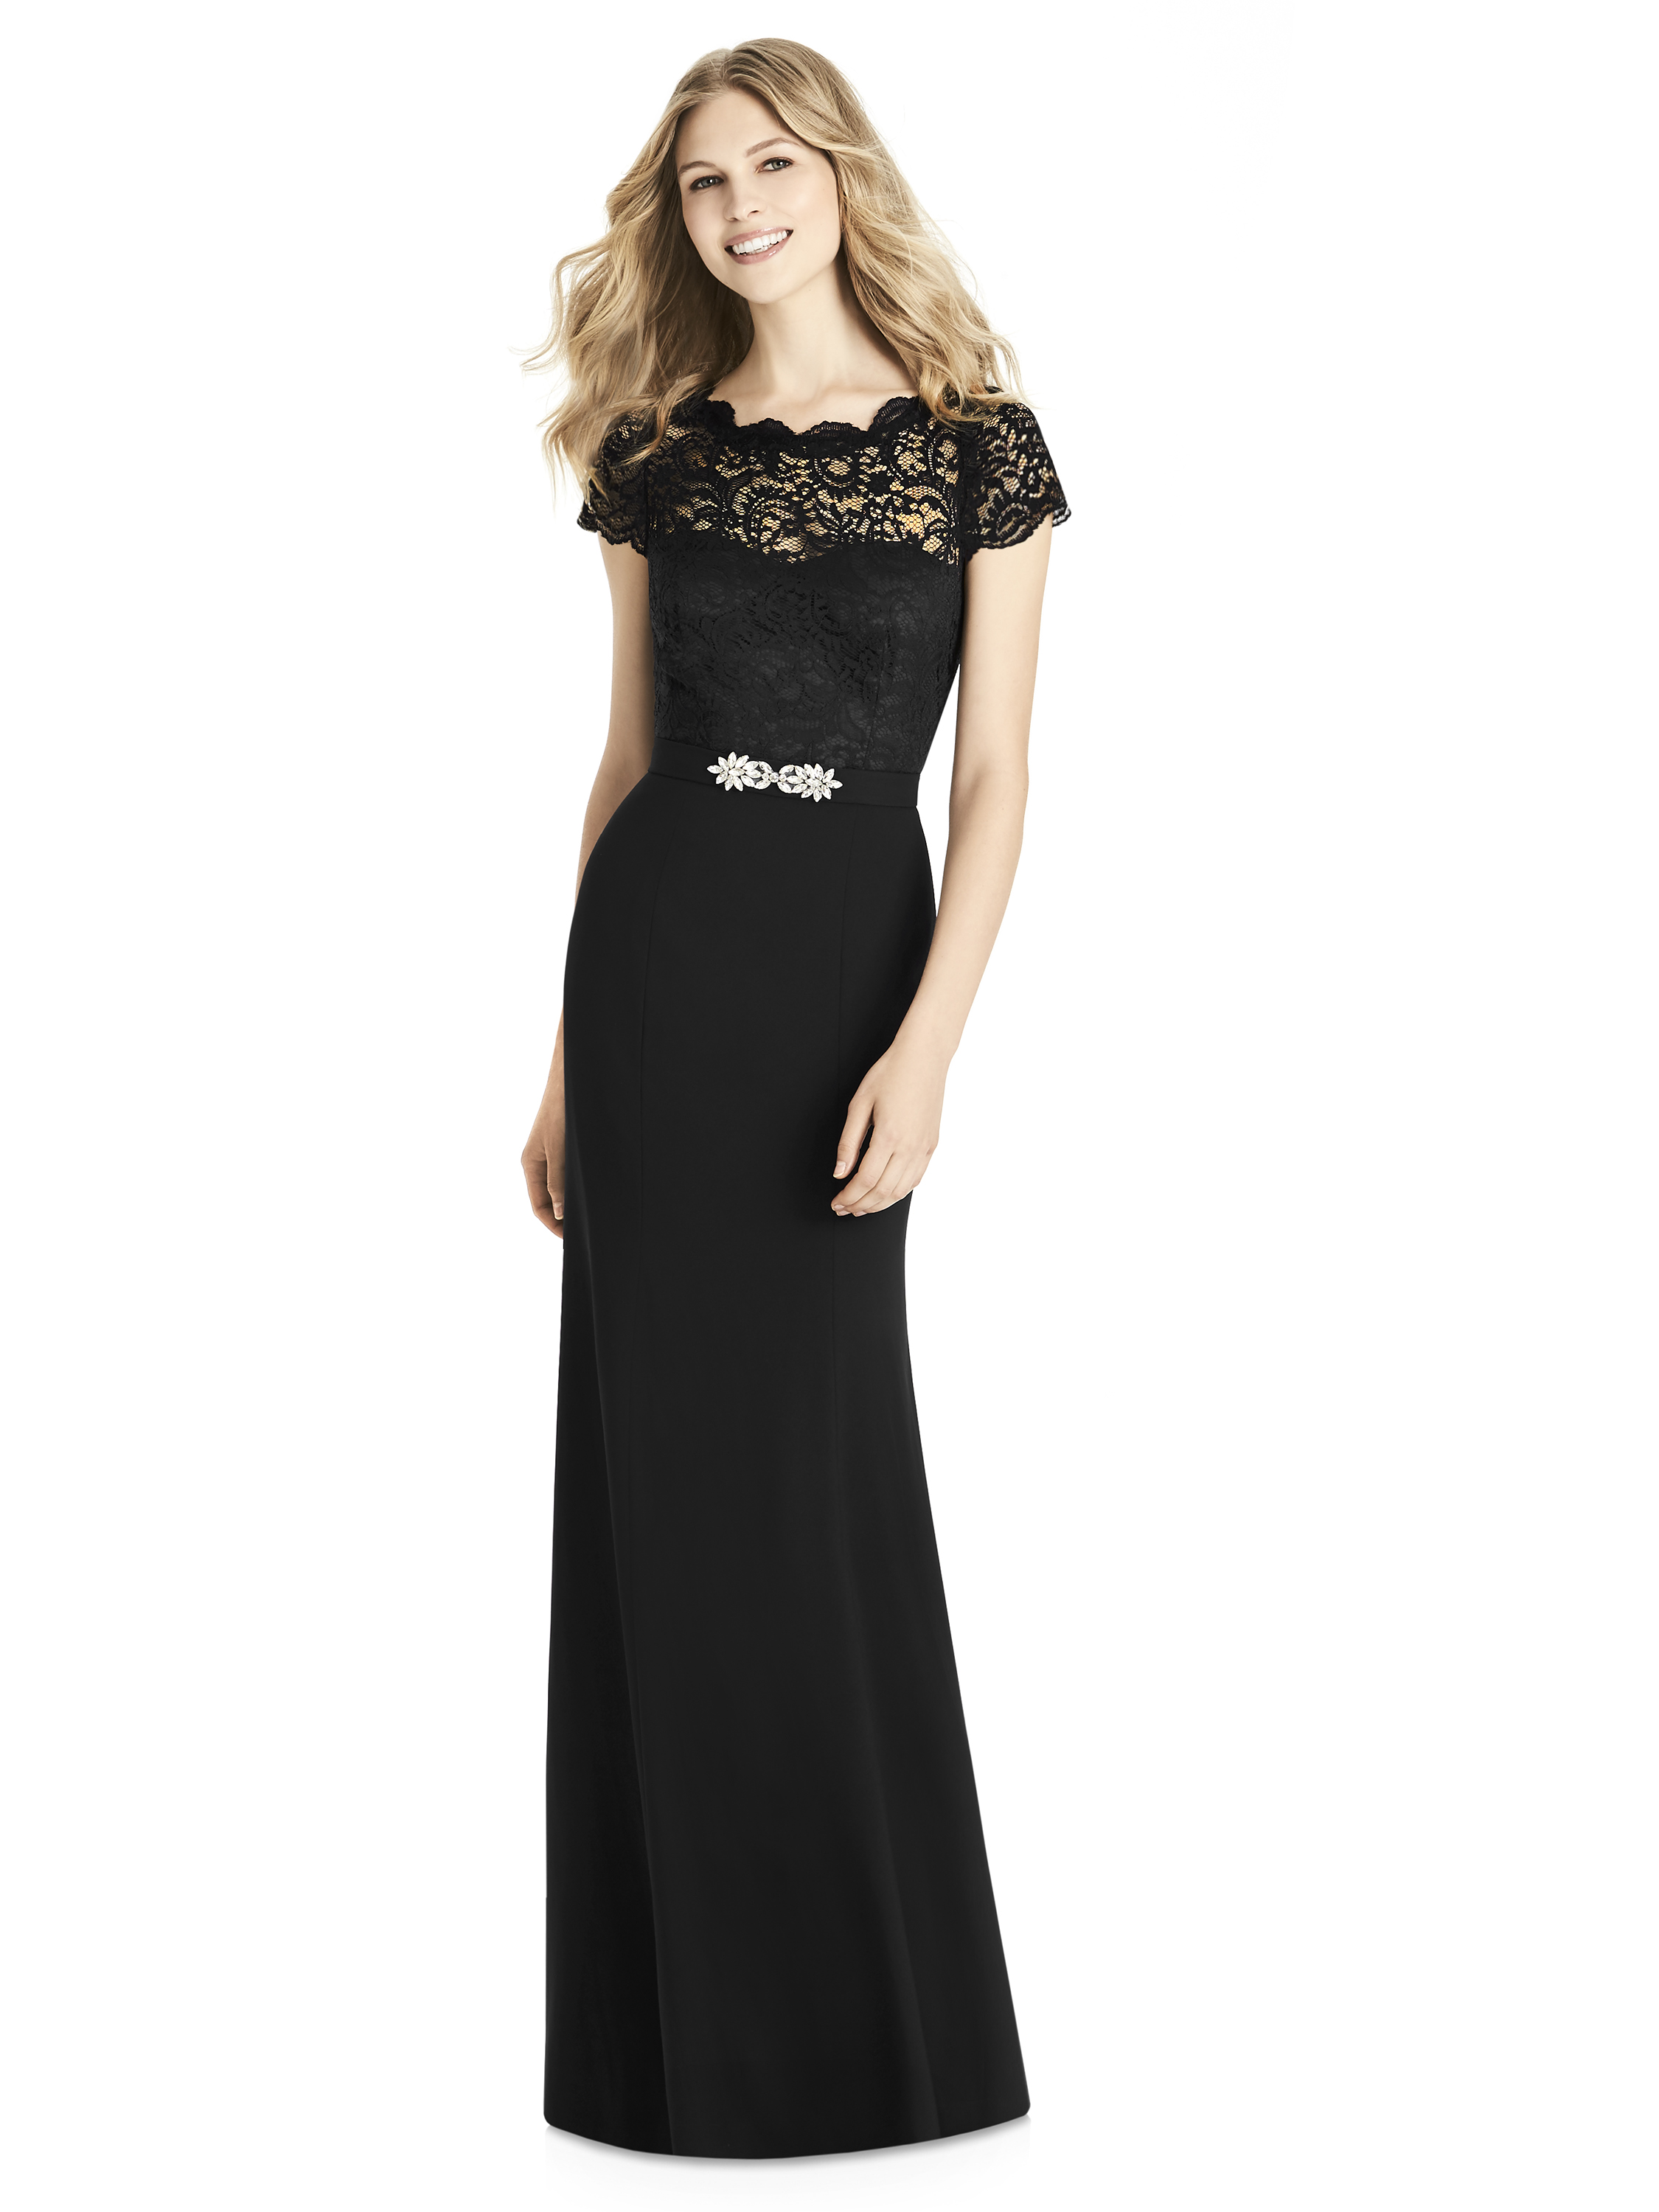 6cec0f438be The design house also launched a collection of nine full-length gowns in  conjunction with David s Bridal last February—so a full-on Jenny Packham  bridal ...